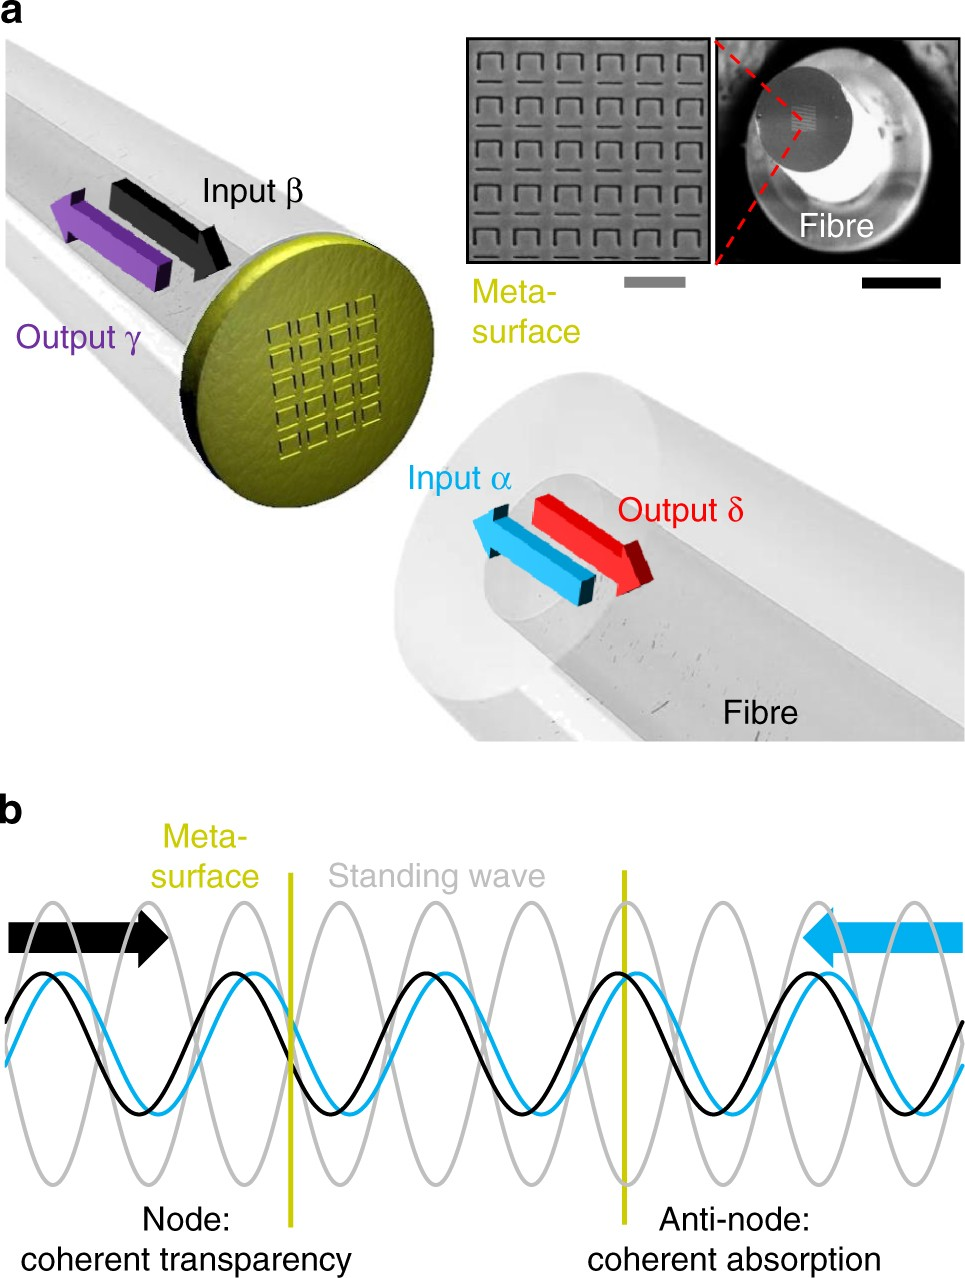 Fibre Optic Metadevice For All Optical Signal Modulation Based On Use Of The Opto Switch Or Interrupter As A Ro Meccanisms Coherent Absorption Nature Communications